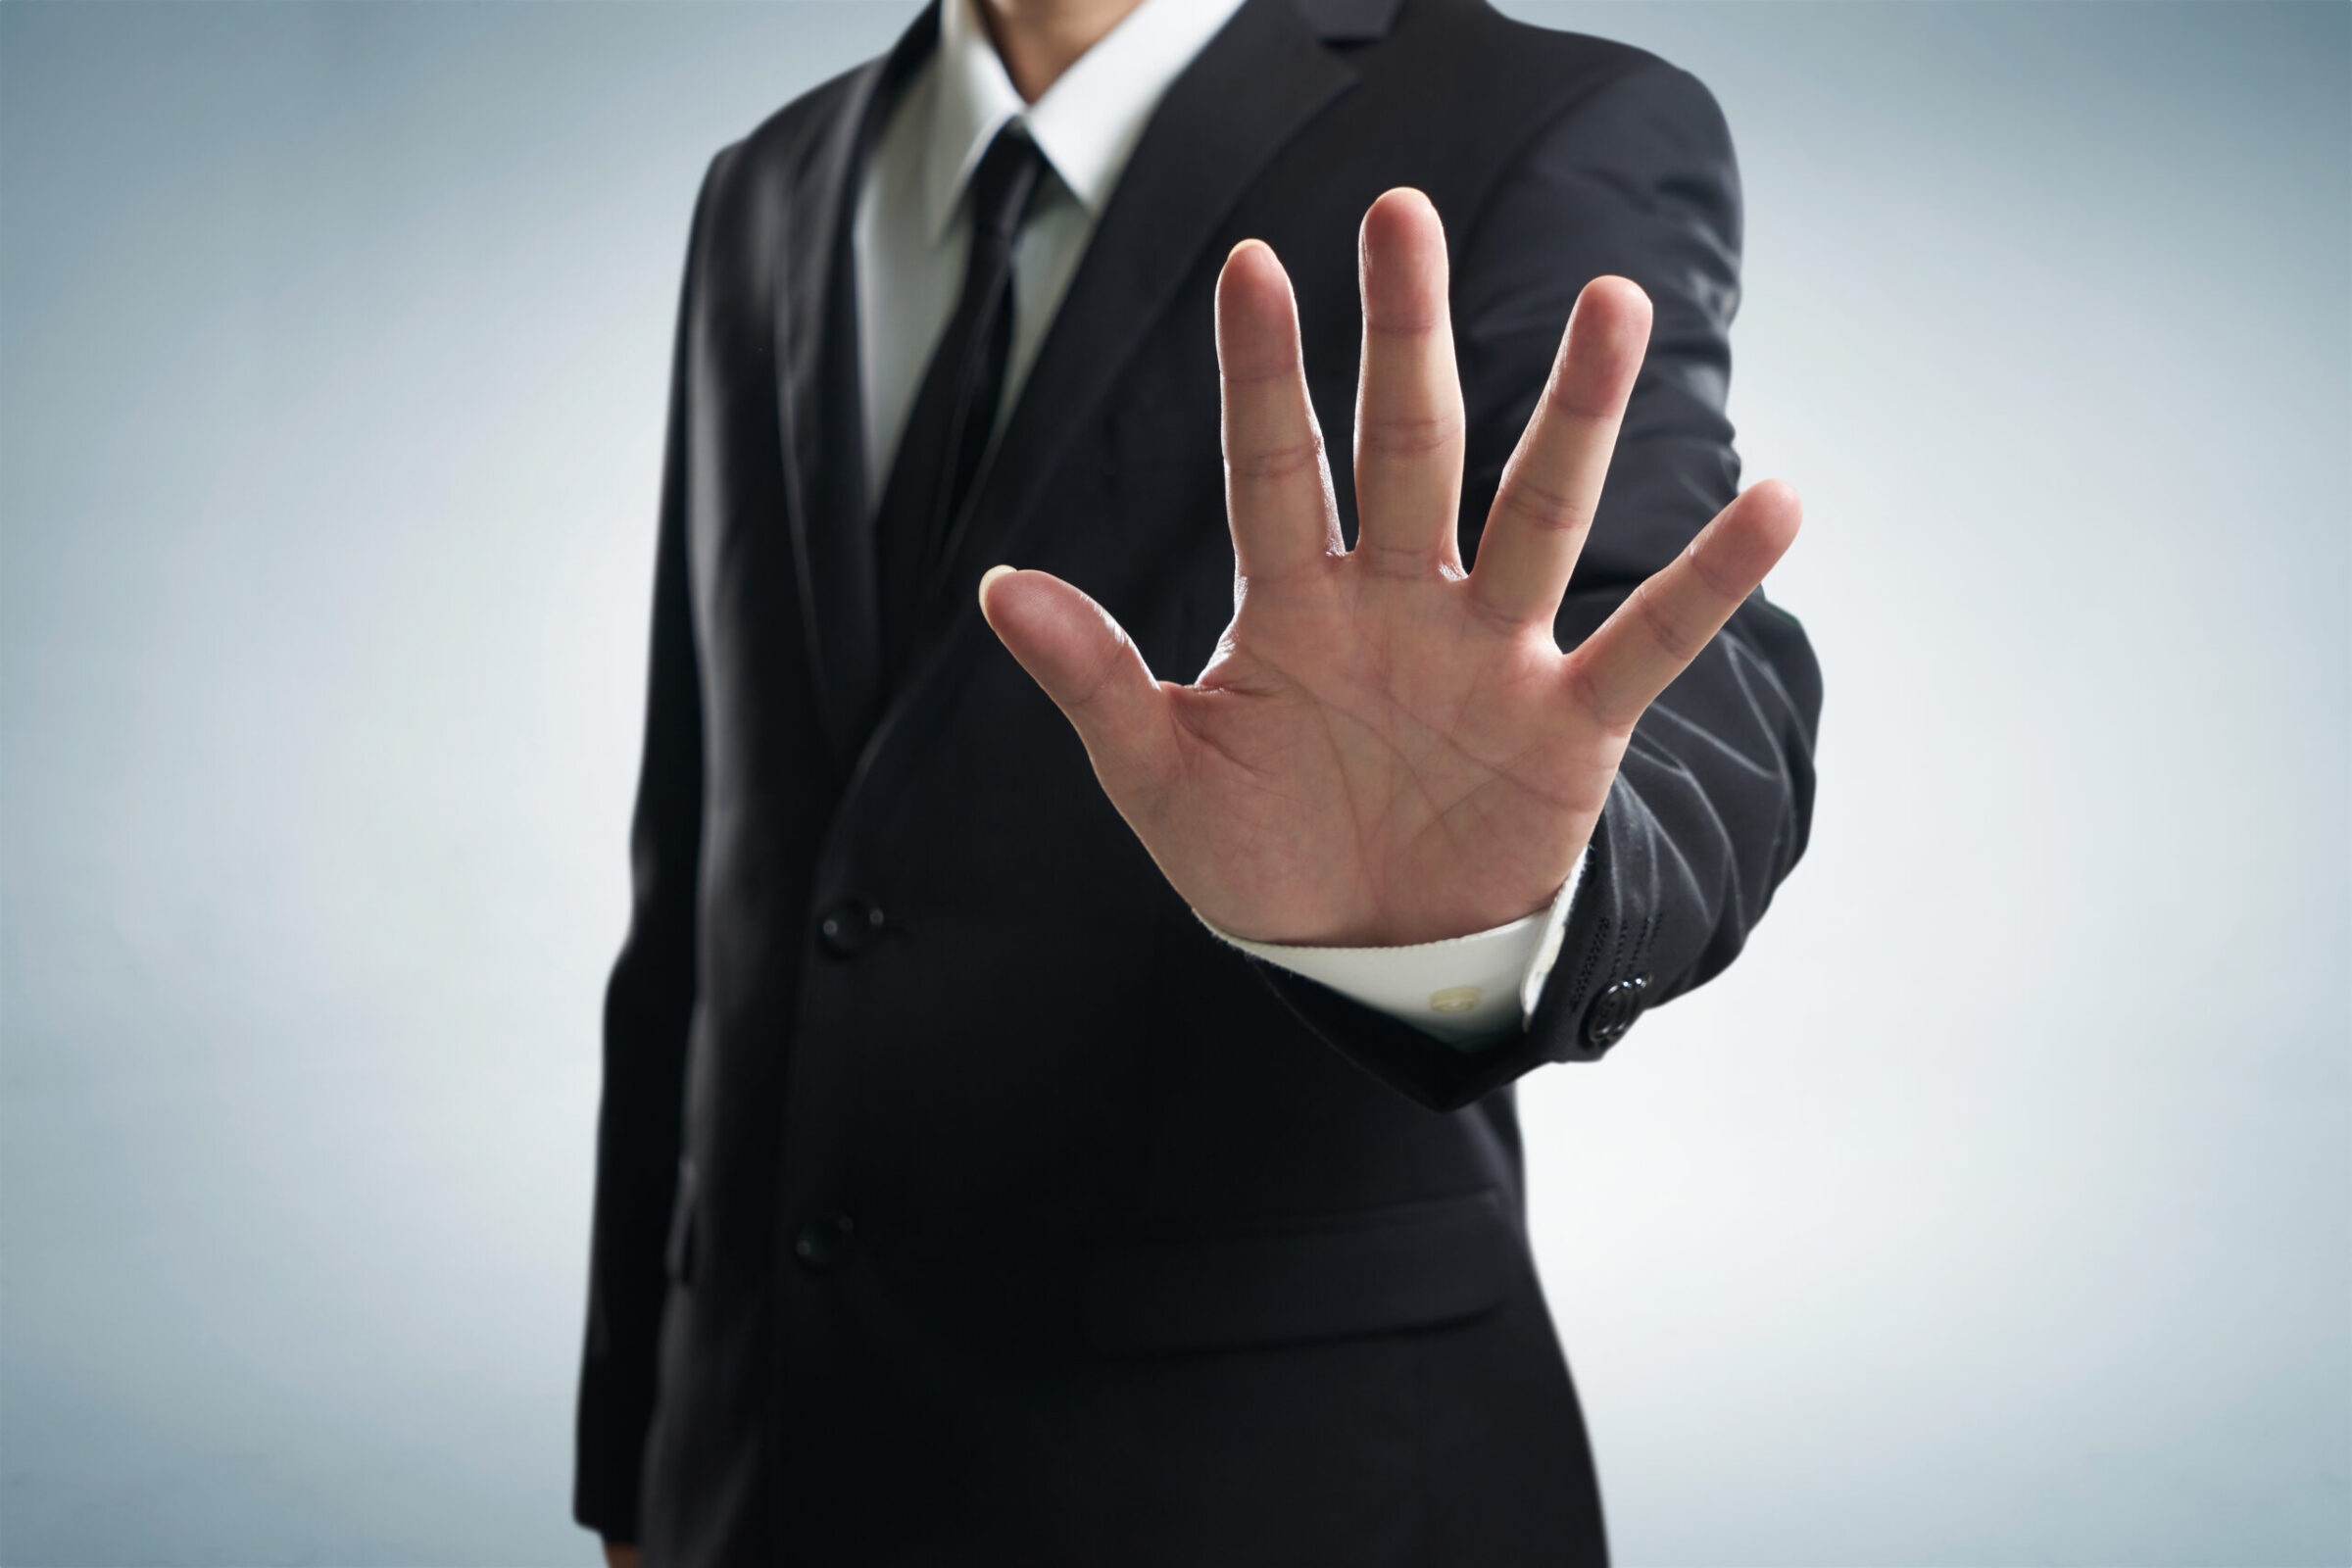 graphicstock hand stop shown by businessman S Uivgie